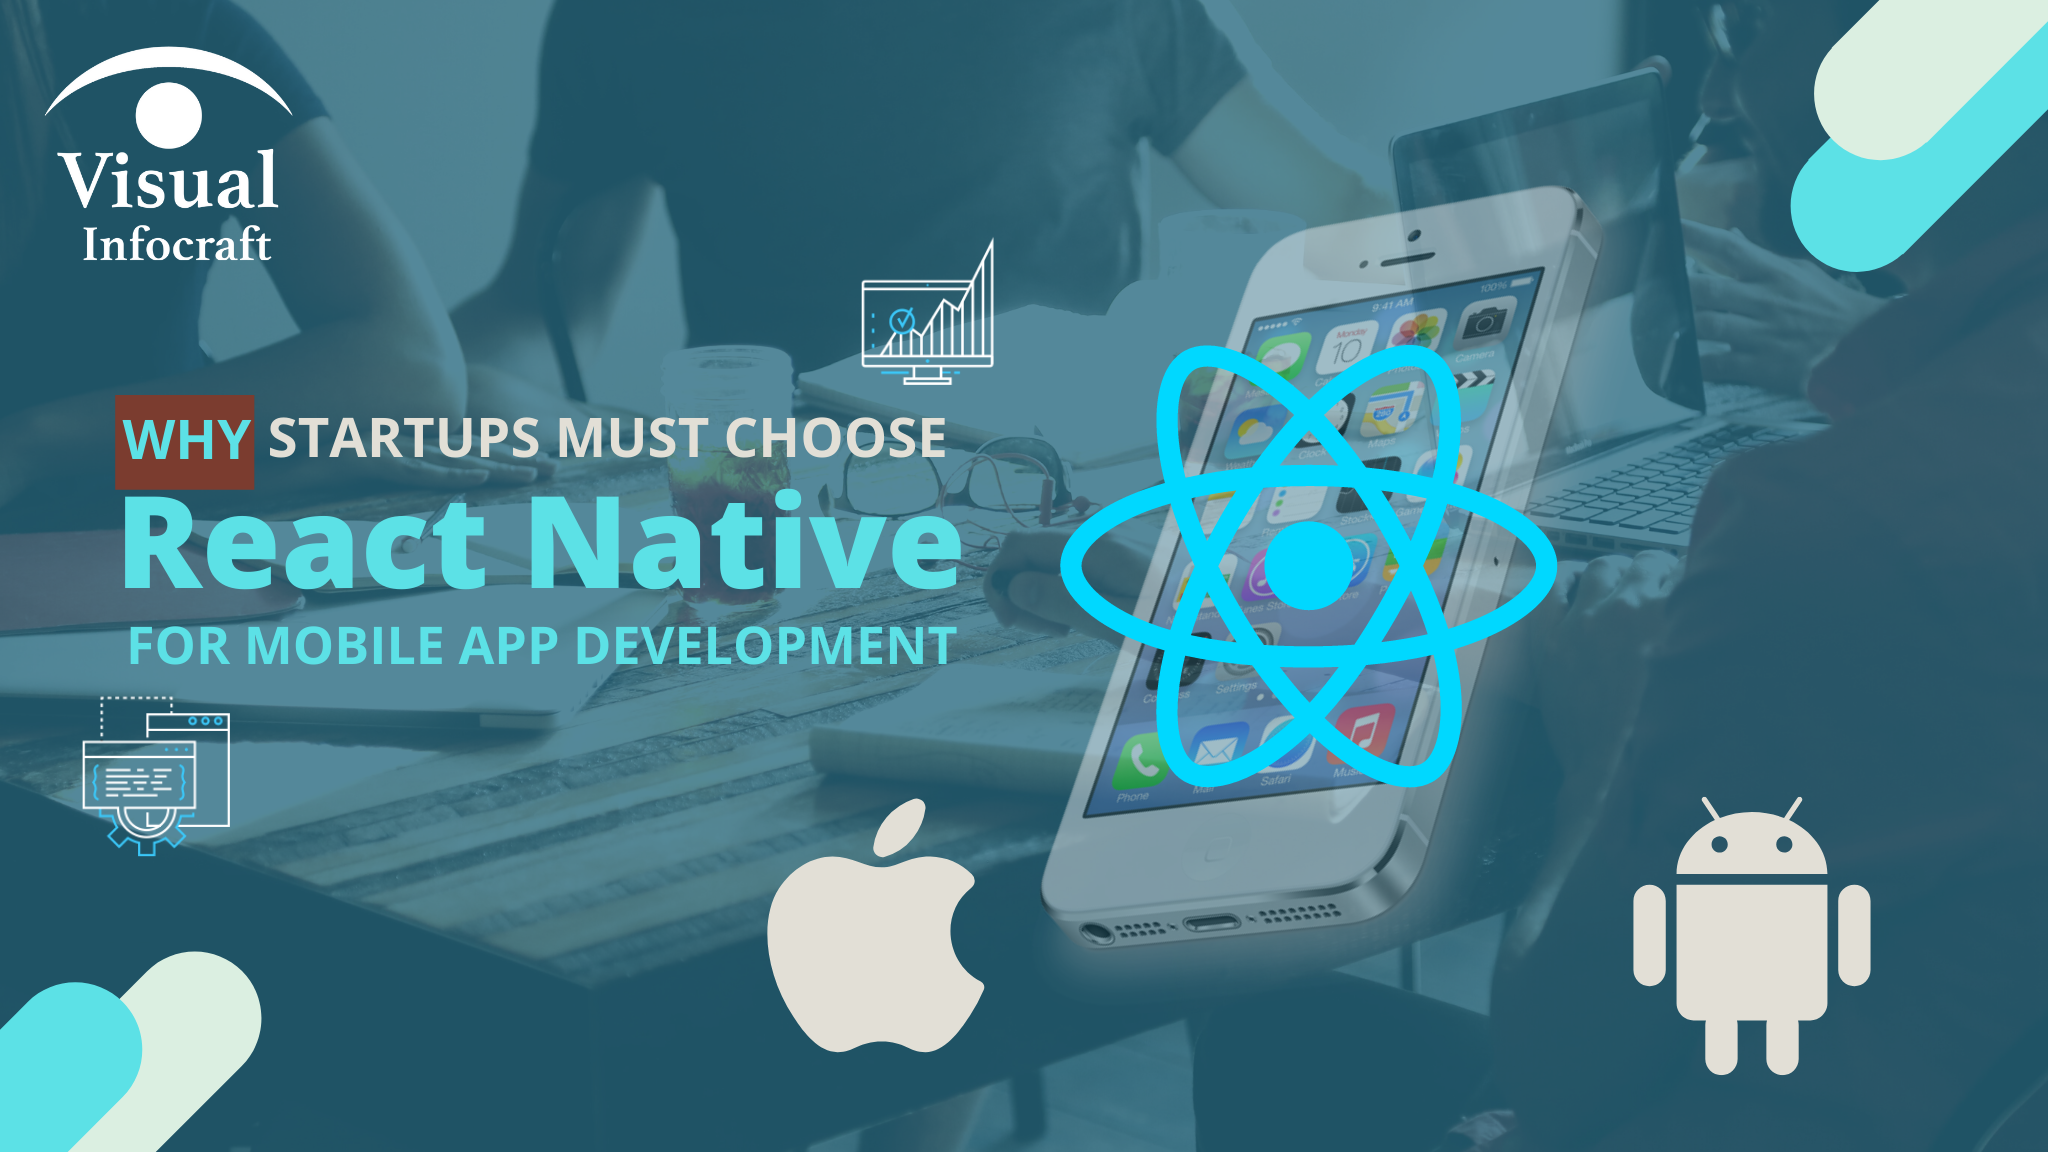 Why Startups Must Choose React Native for Mobile App Development